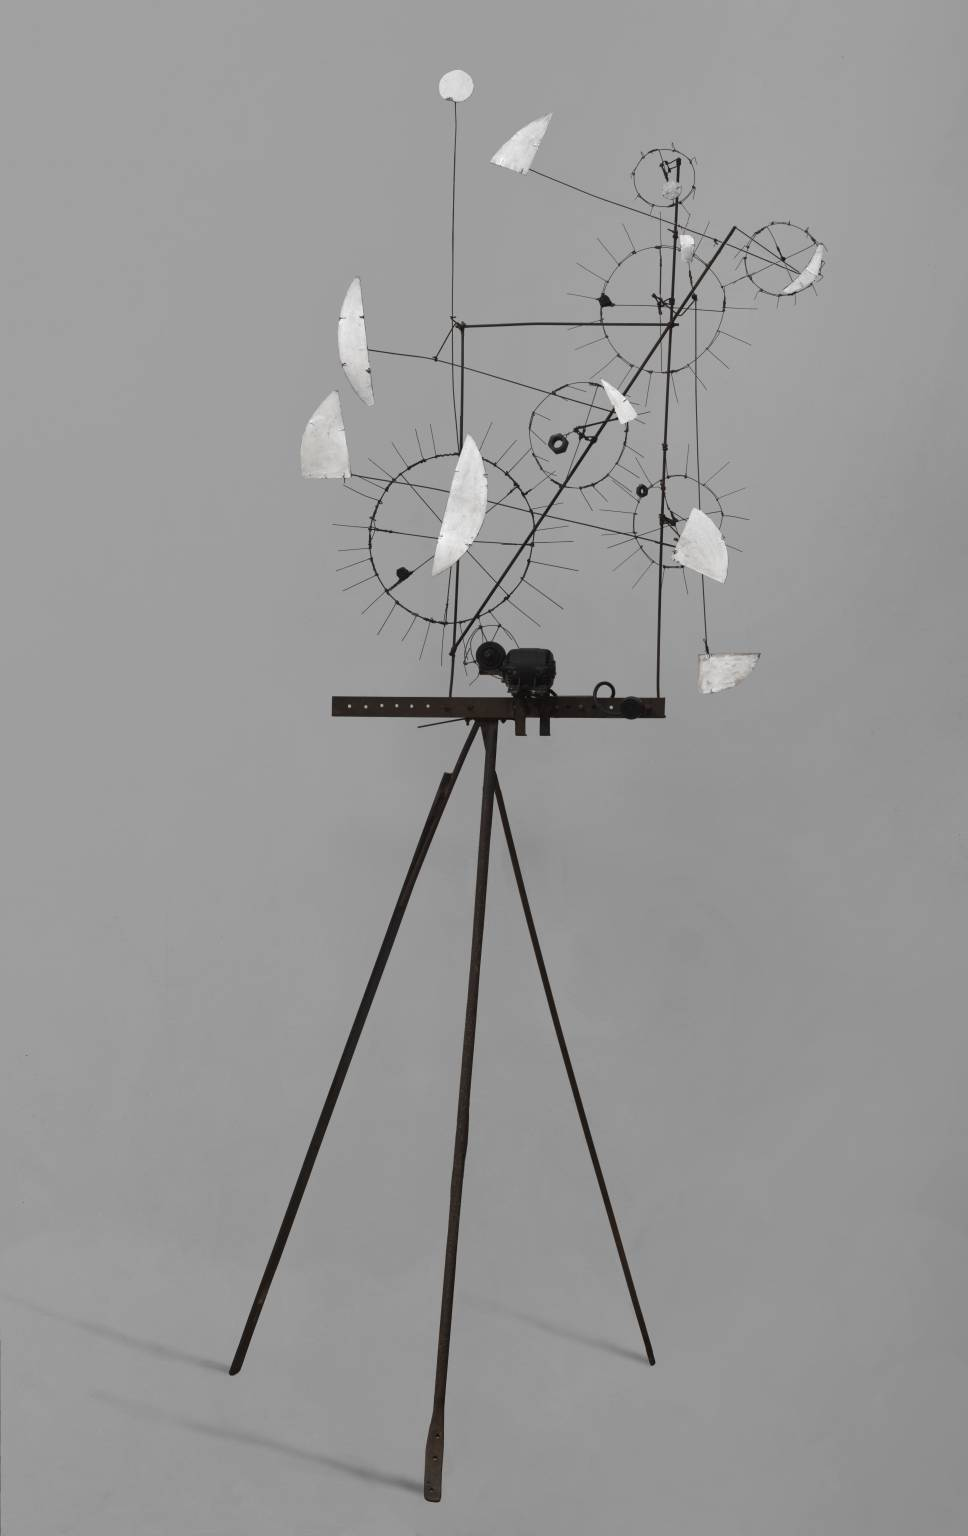 Metamechanical Sculpture with Tripod 1954 by Jean Tinguely 1925-1991